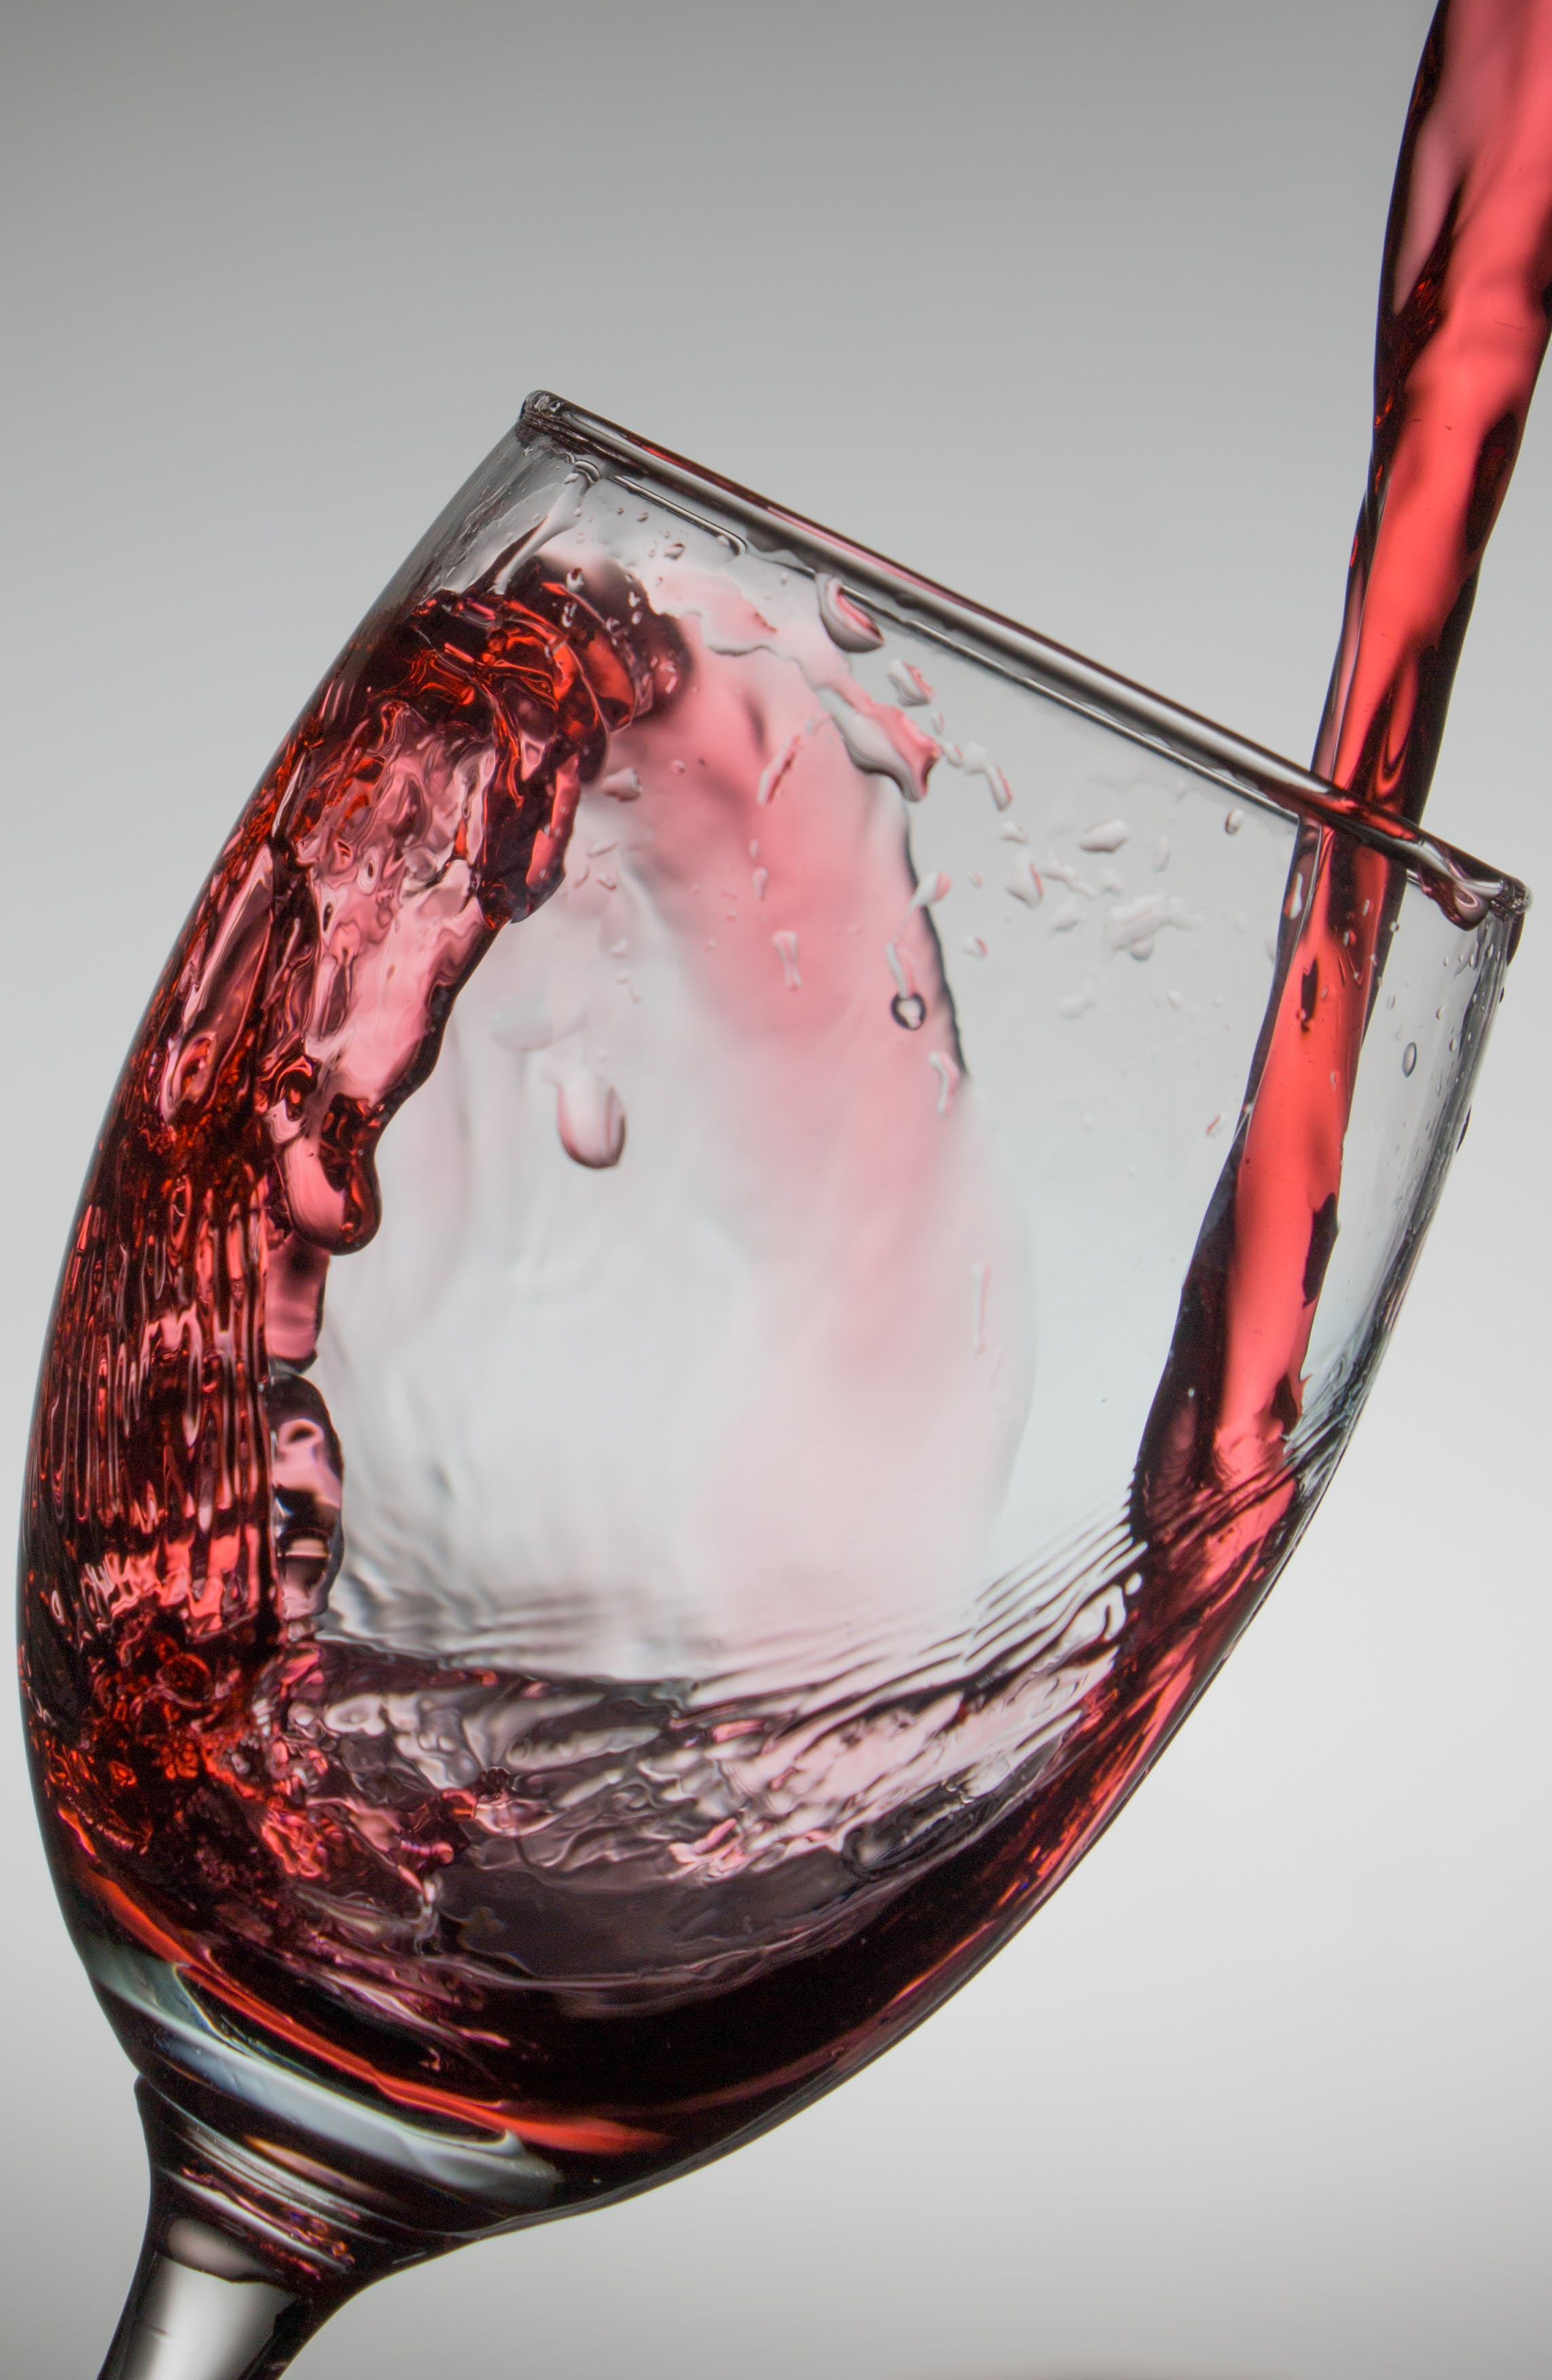 Free stock photo of 90, classic, cocktail glass, red wine